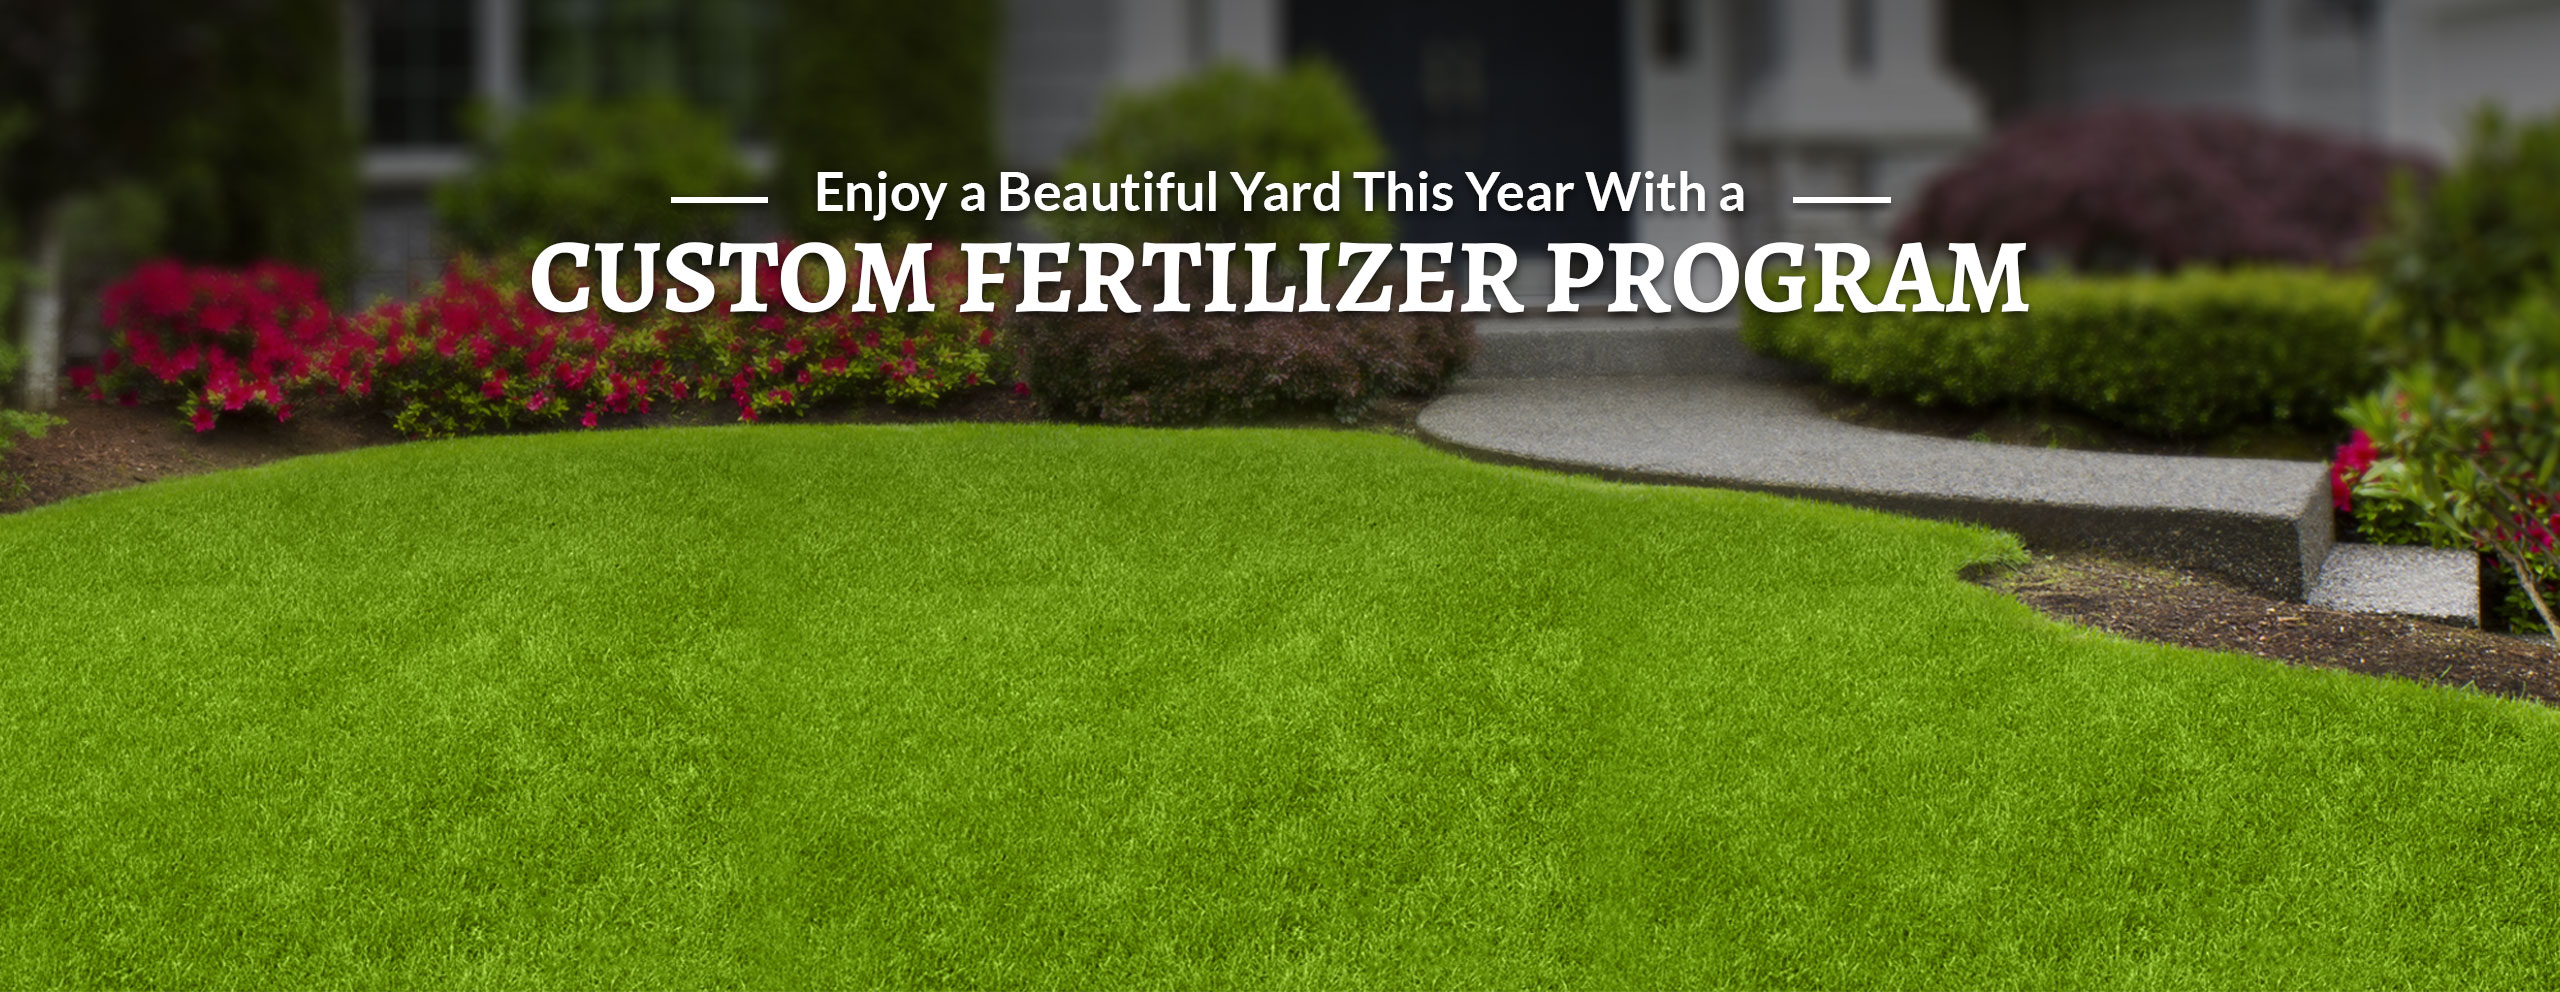 slide-01-enjoy-a-beautiful-yard-this-year-with-a-custom-fertilizer-program